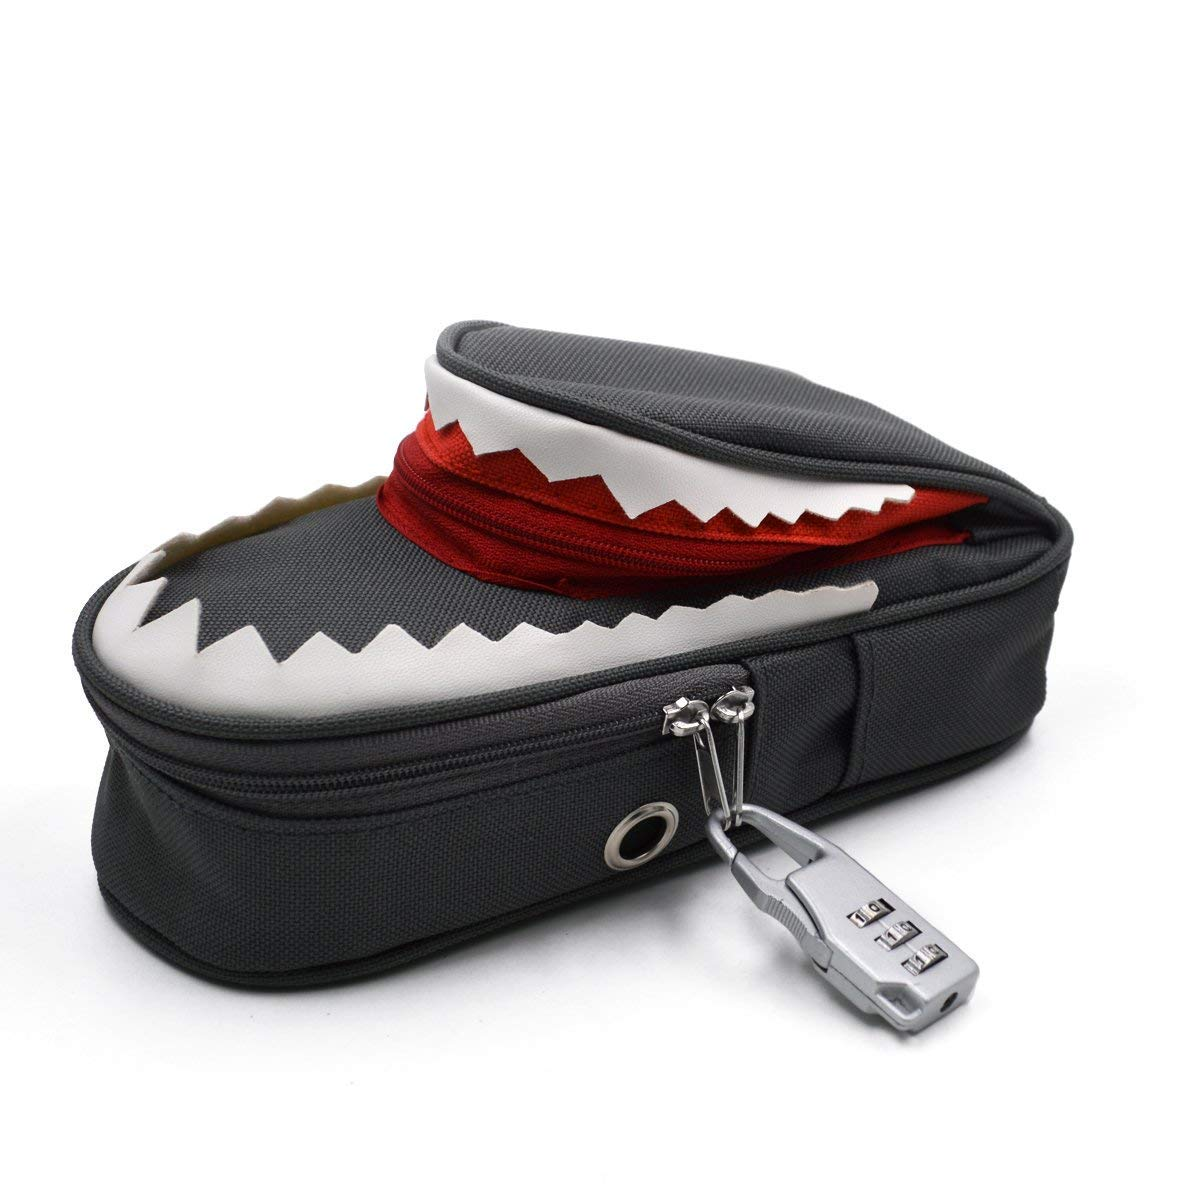 Creative 3D Shark Pencil Case Multi-Functional Cute Cartoon Animal School Stationery Supplies Organizers Large Capacity Pen Bag Pouch Holder Makeup Cosmetic Storage Bag with Code Lock (Grey)